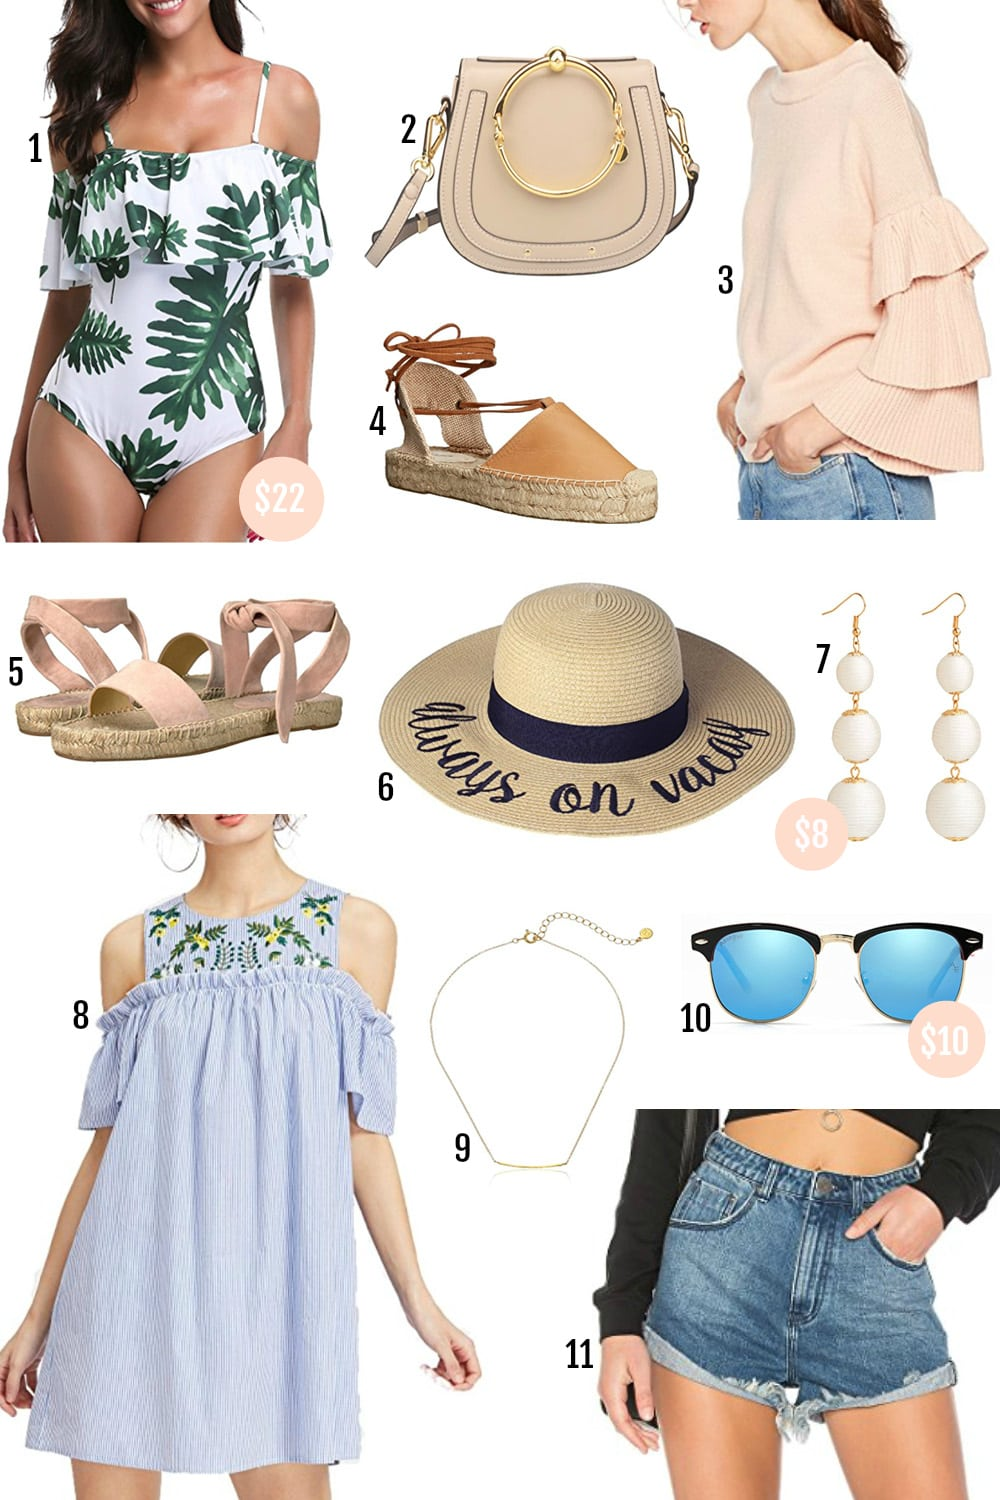 Beauty blogger Mash Elle shares her roundup of affordable spring fashion finds | Amazon | Amazon fashion | spring fashion